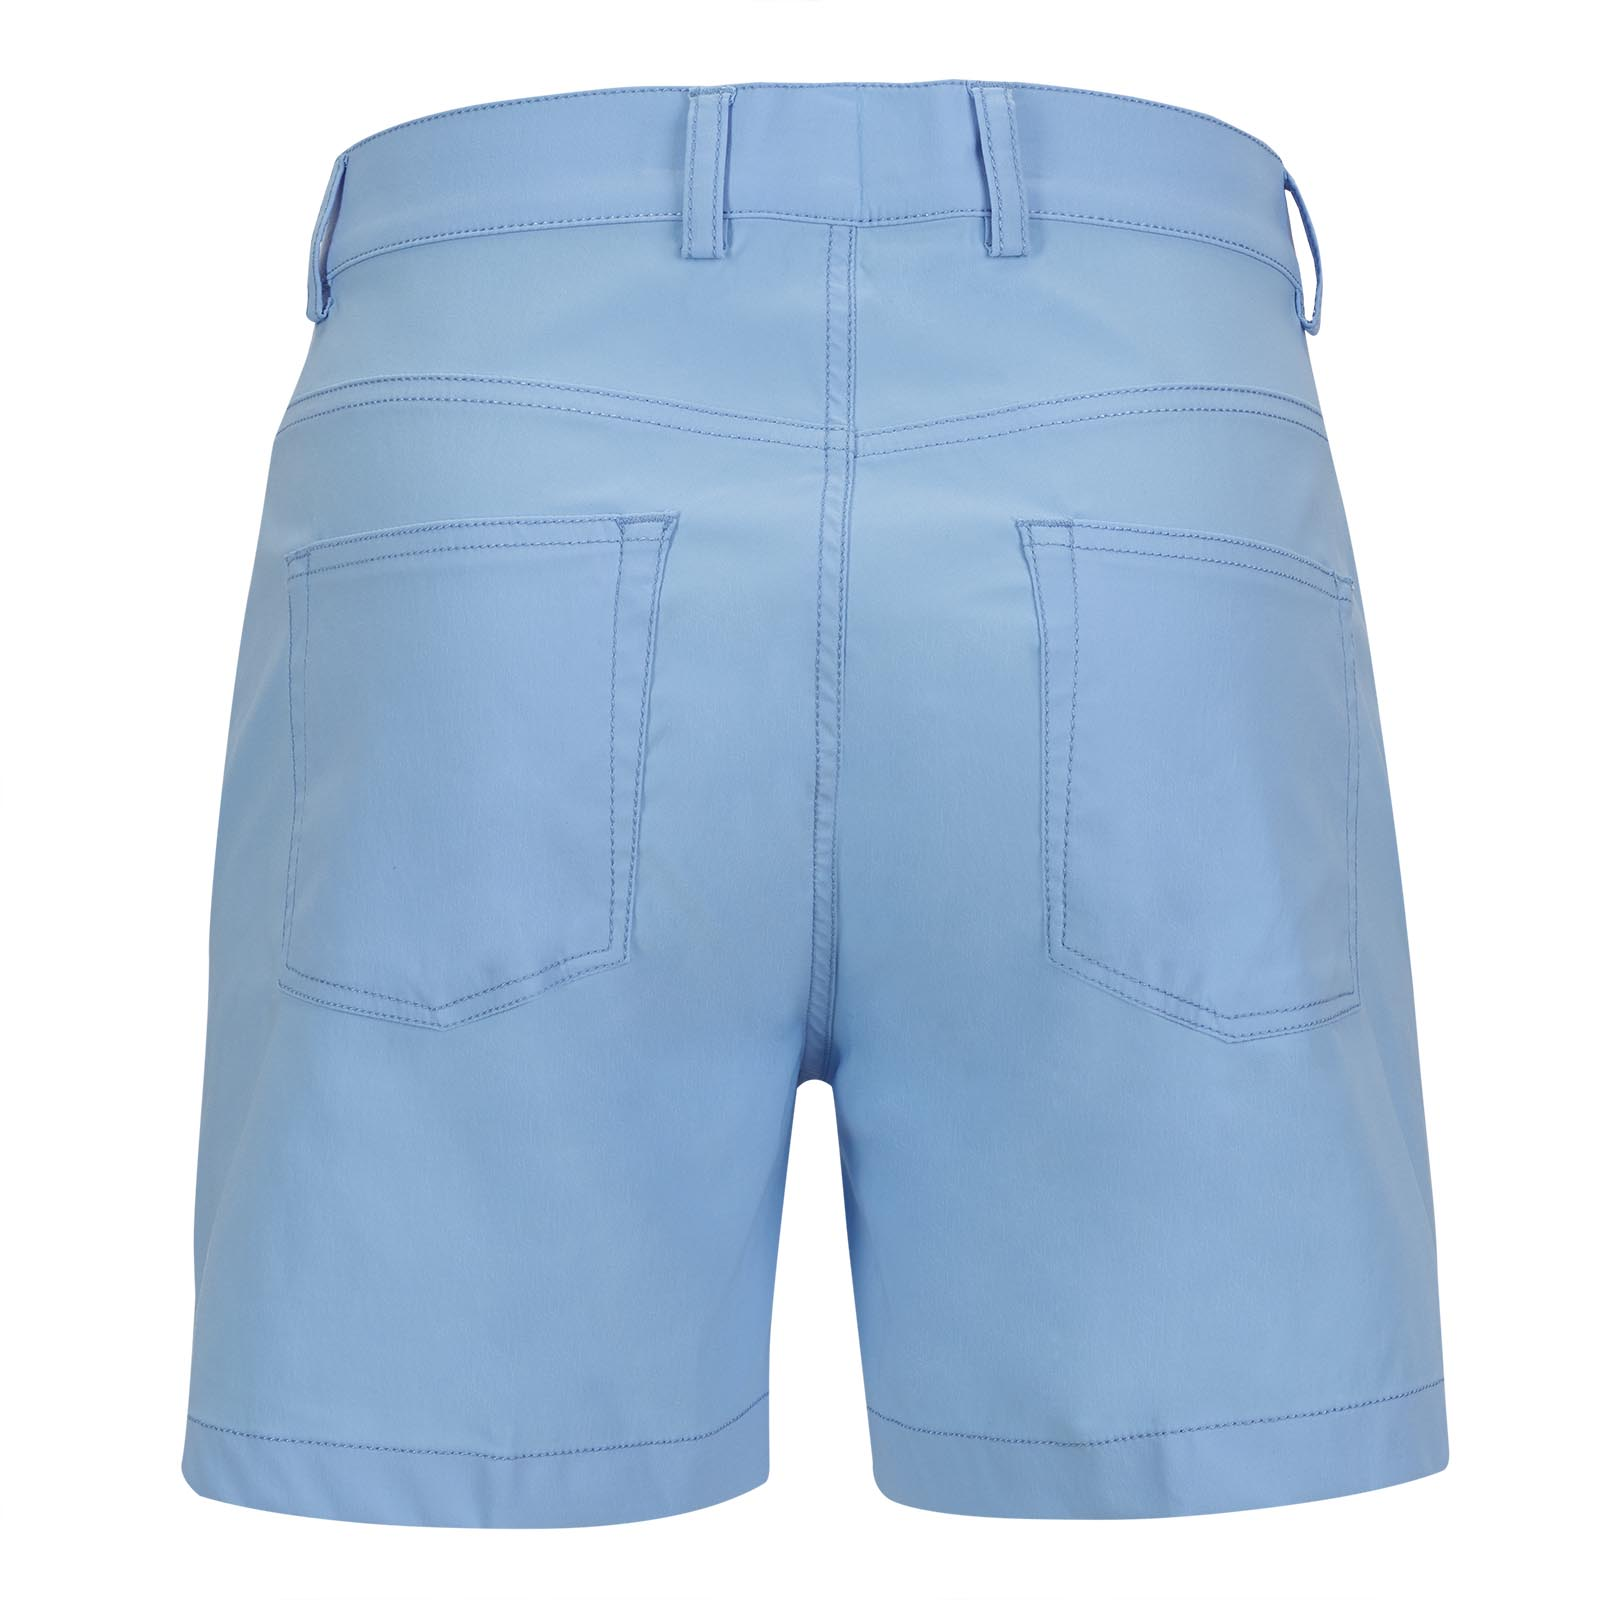 Damen Stretch-Bermudas